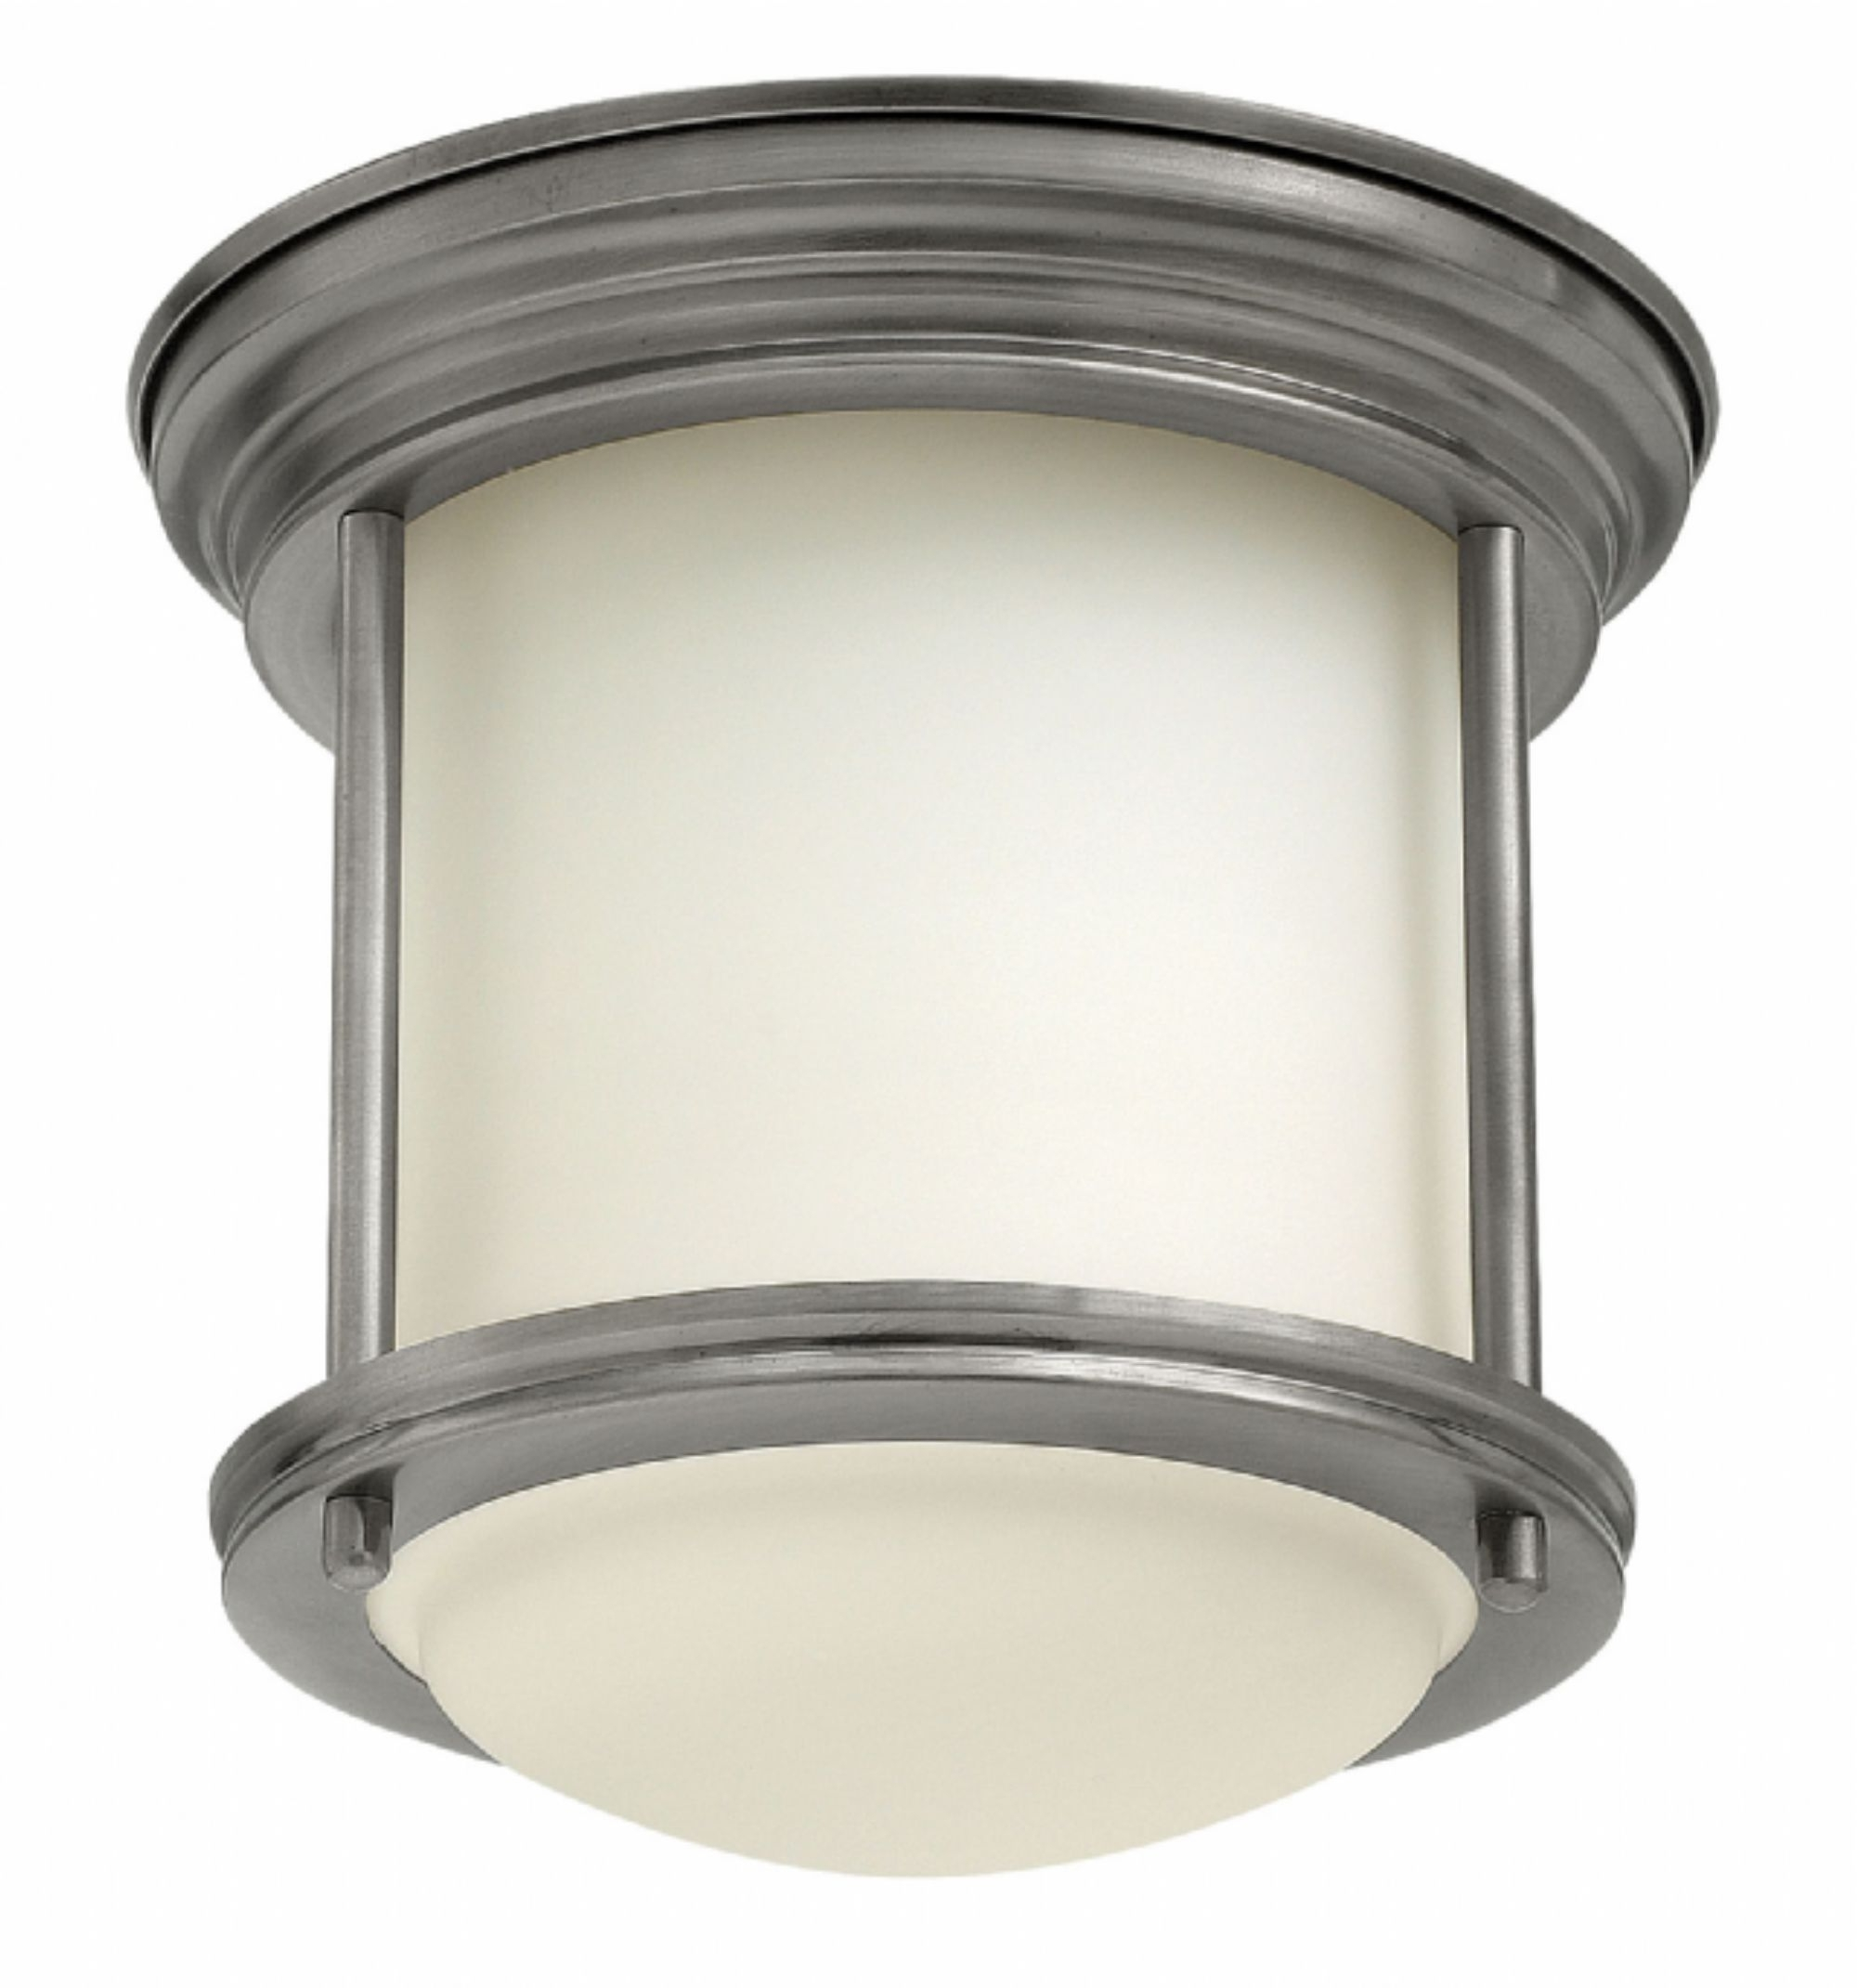 Flush Mount Hinkley Lighting With Regard To Well Liked Antique Nickel Hadley > Interior Ceiling Mount (View 12 of 20)